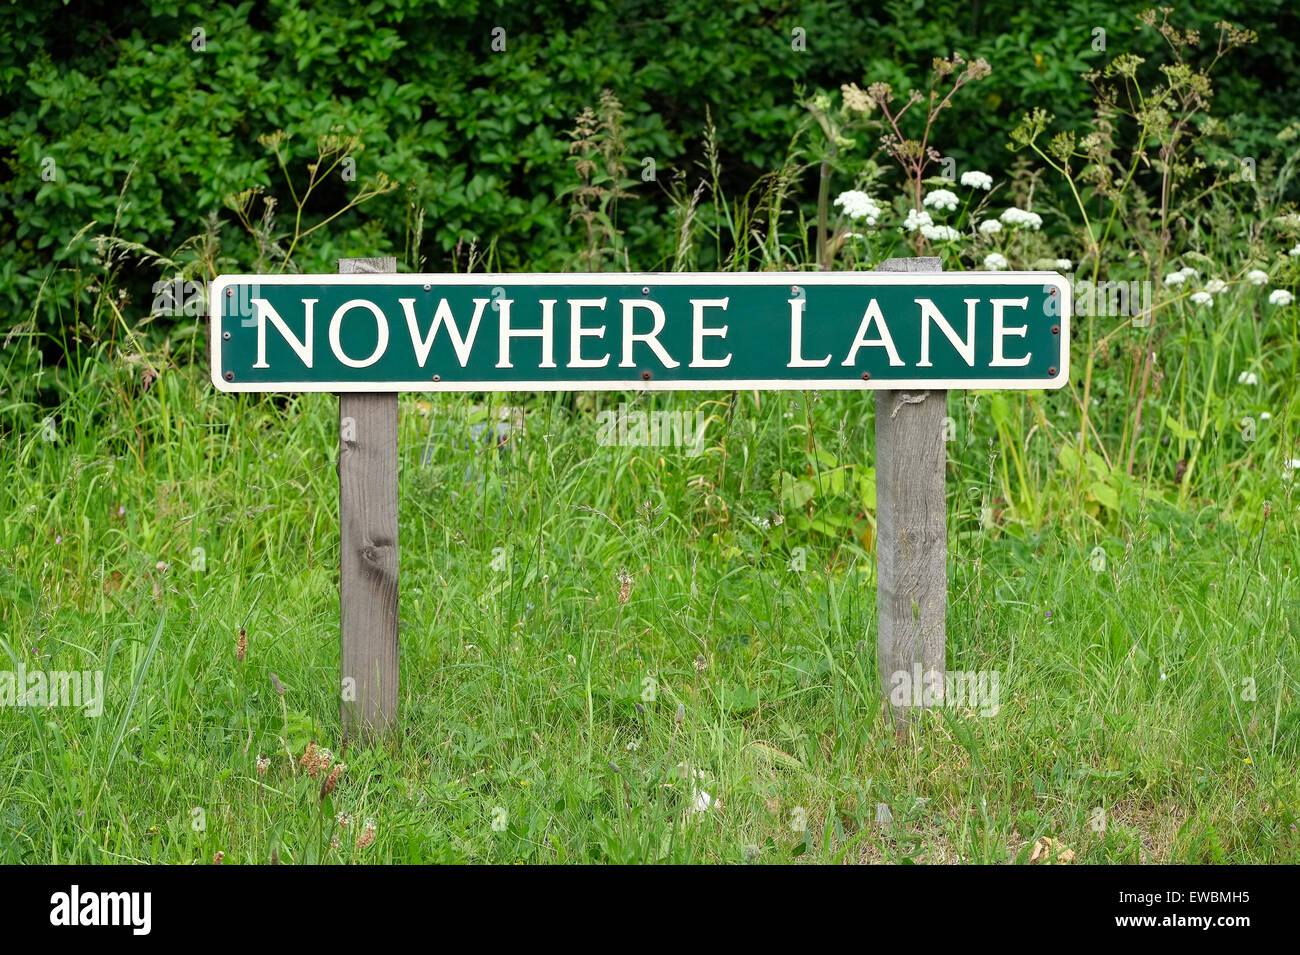 no where lane road sign, norfolk, england - Stock Image